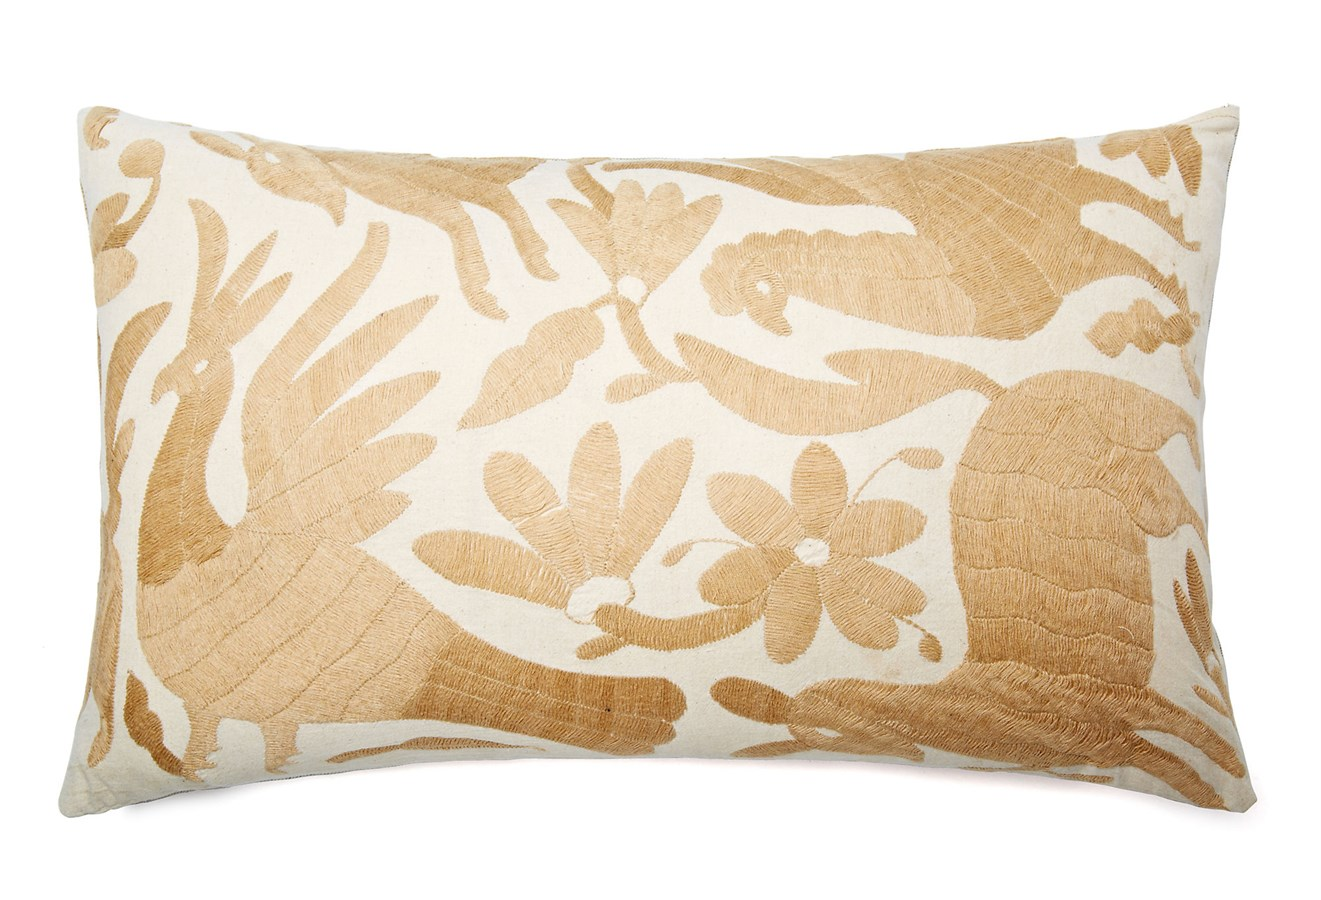 Embroidered animal pillow covers jane